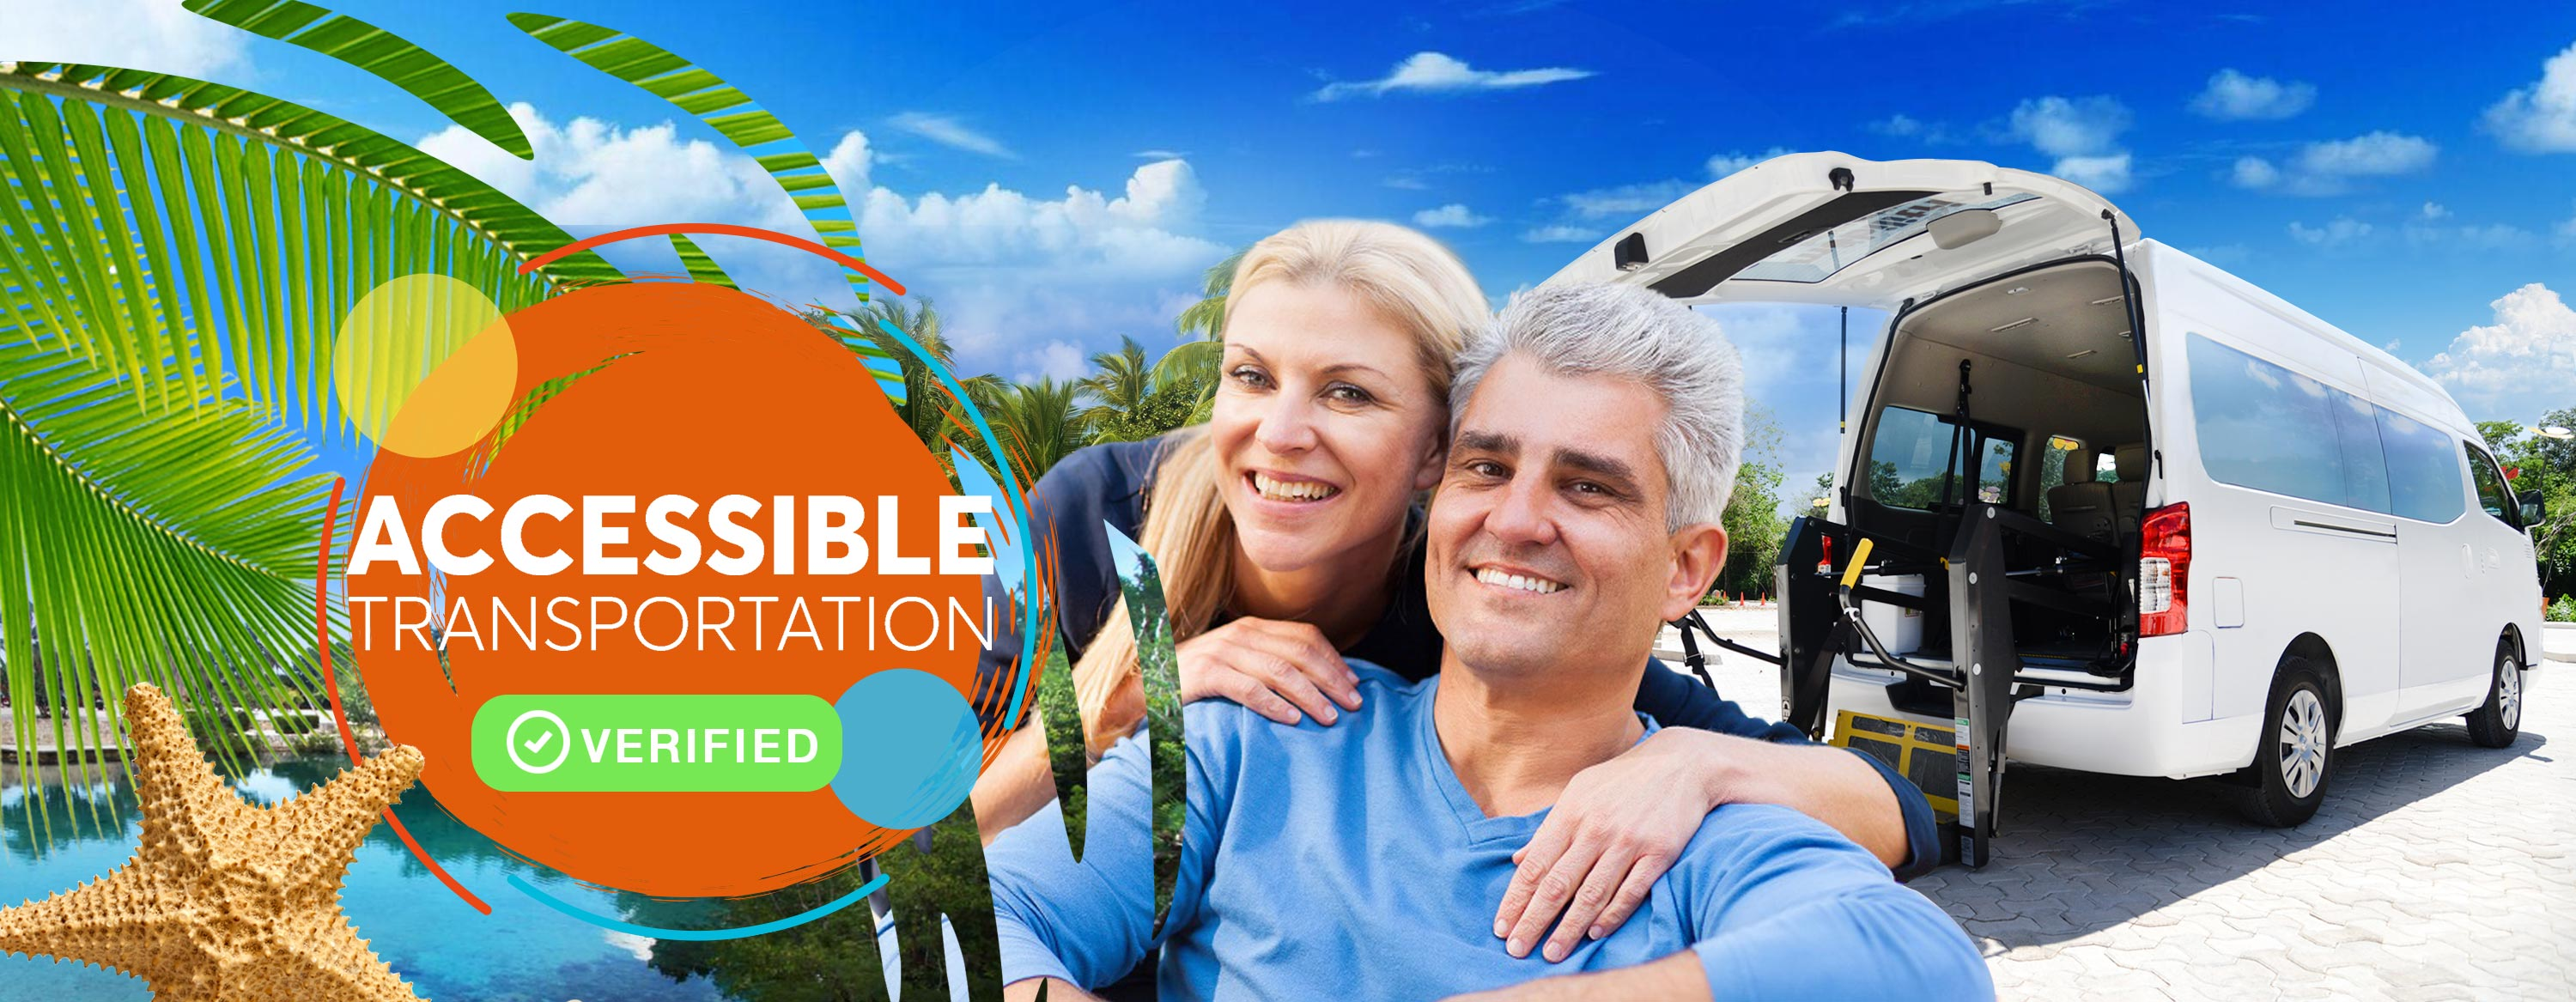 Accessible Transportation Cozumel